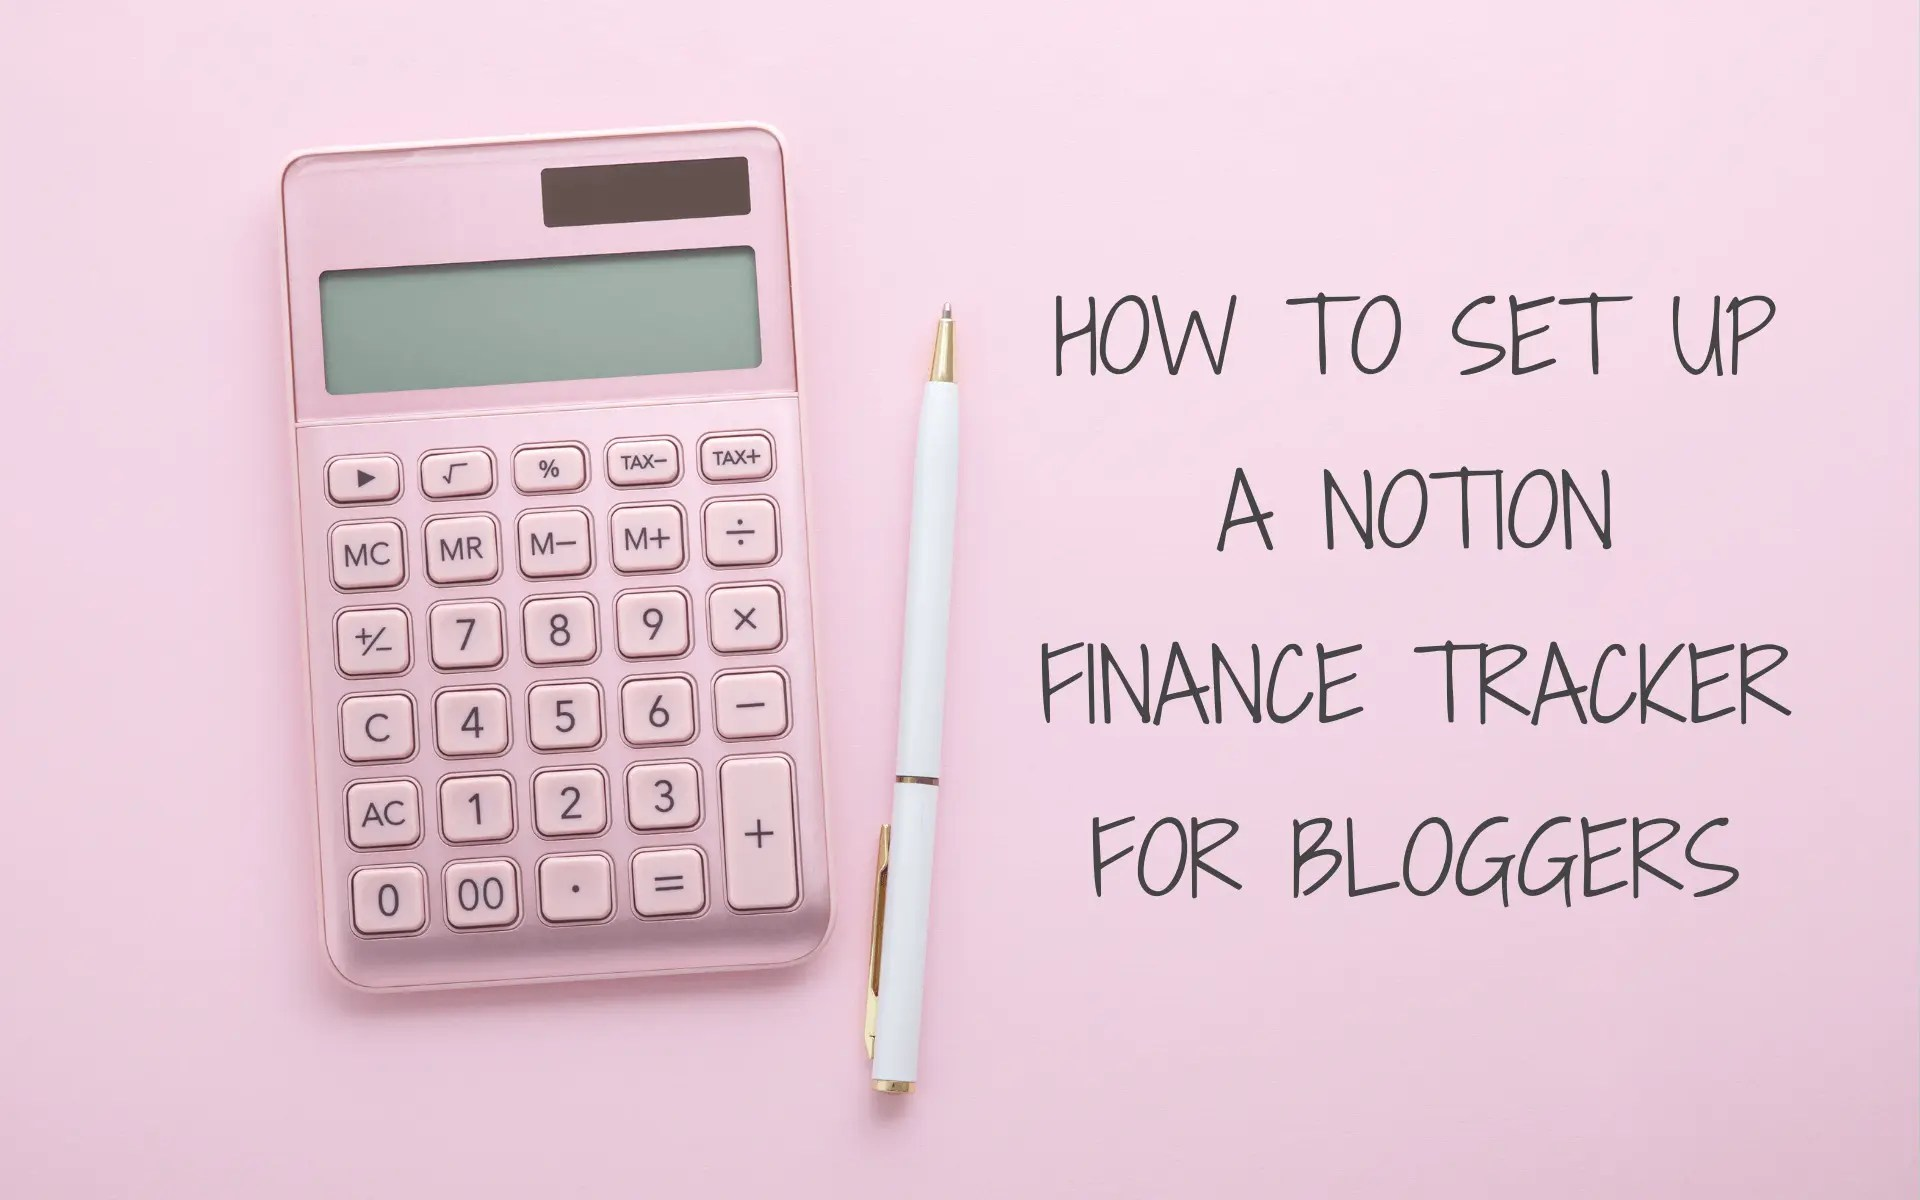 How to set up a Notion finance tracker for bloggers